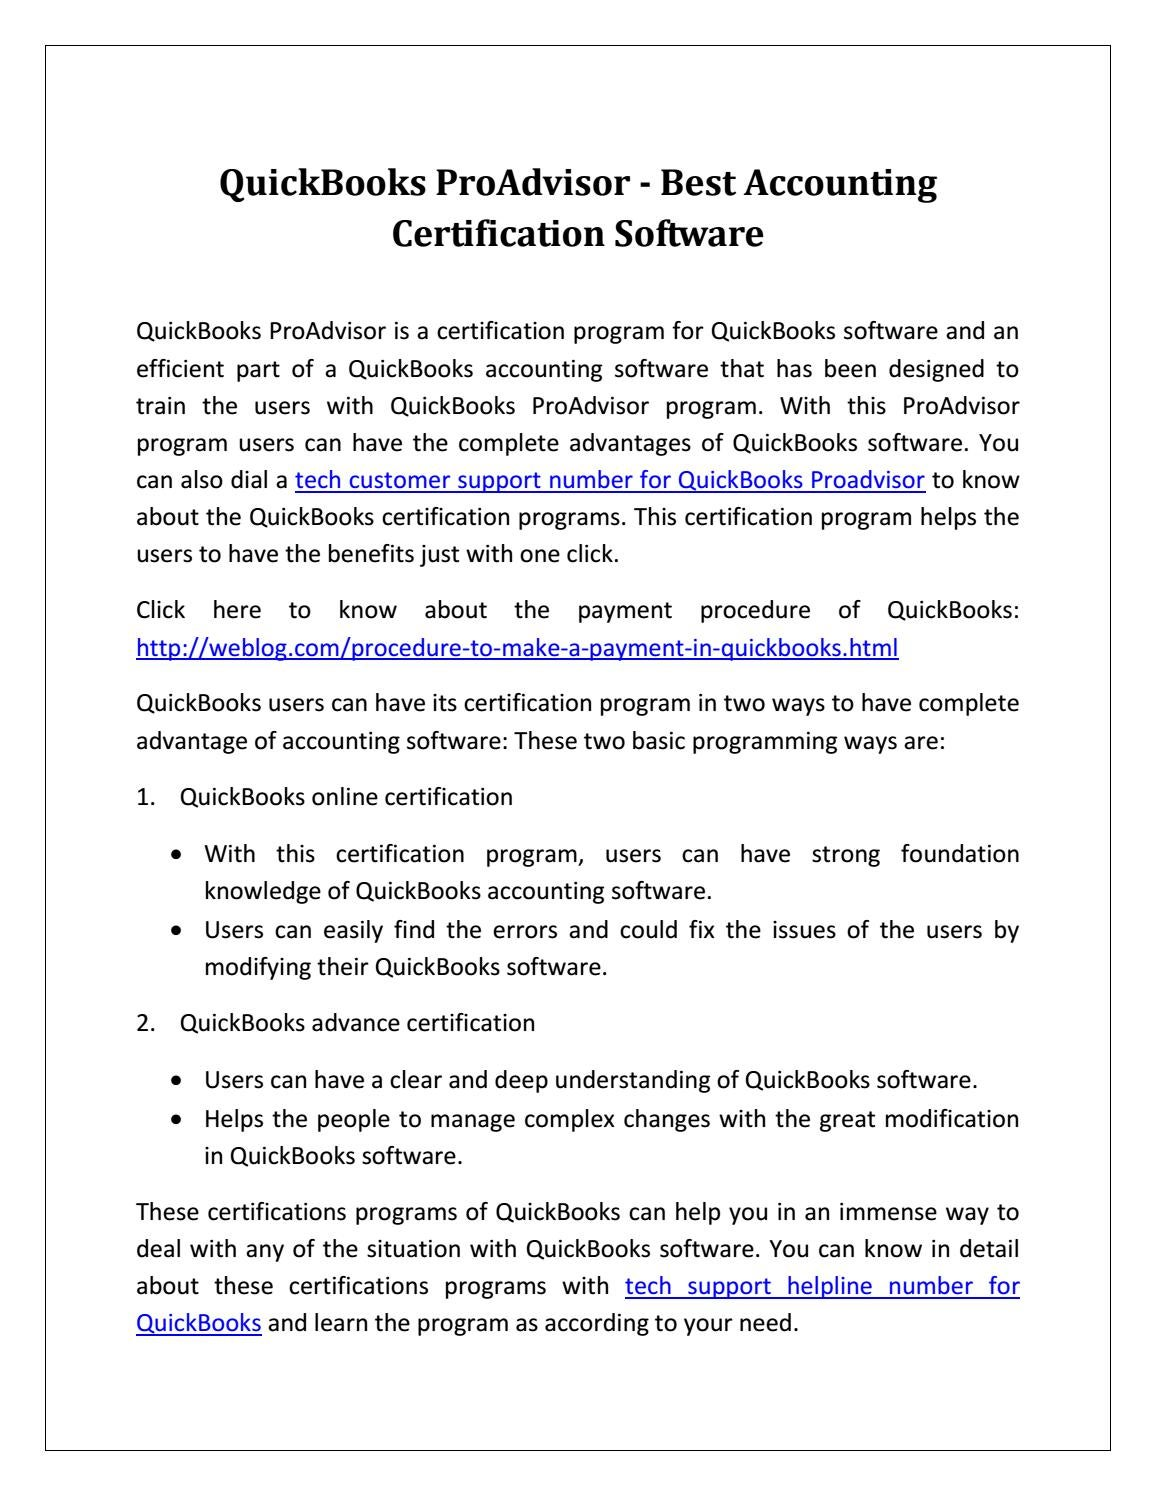 Quickbooks Proadvisor Best Accounting Certification Software By